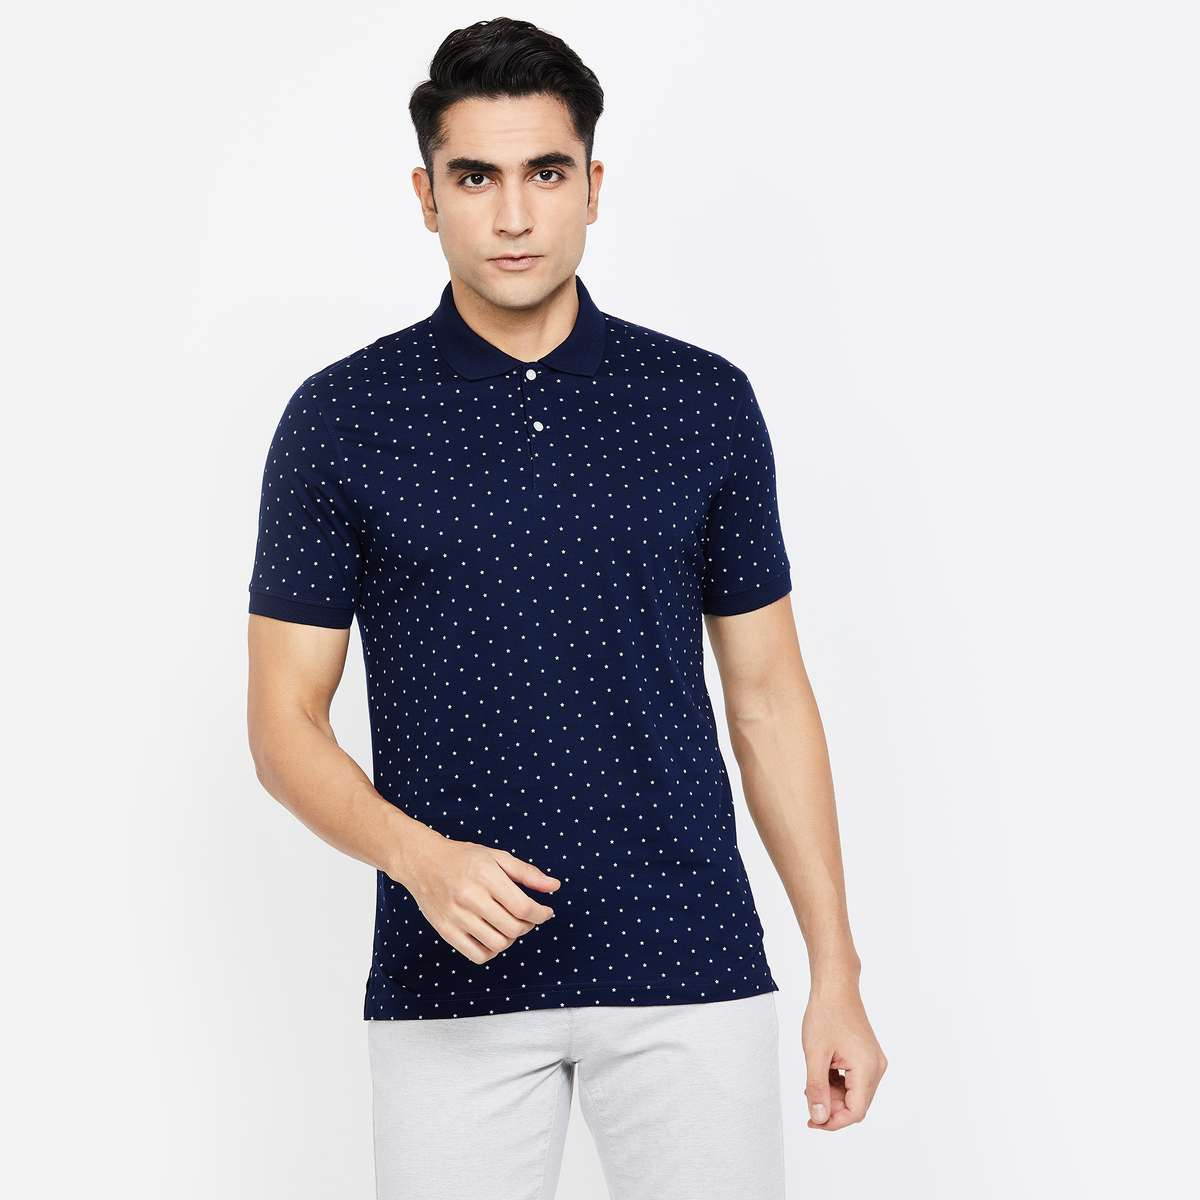 8-CODE Printed Regular Fit Polo T-shirt